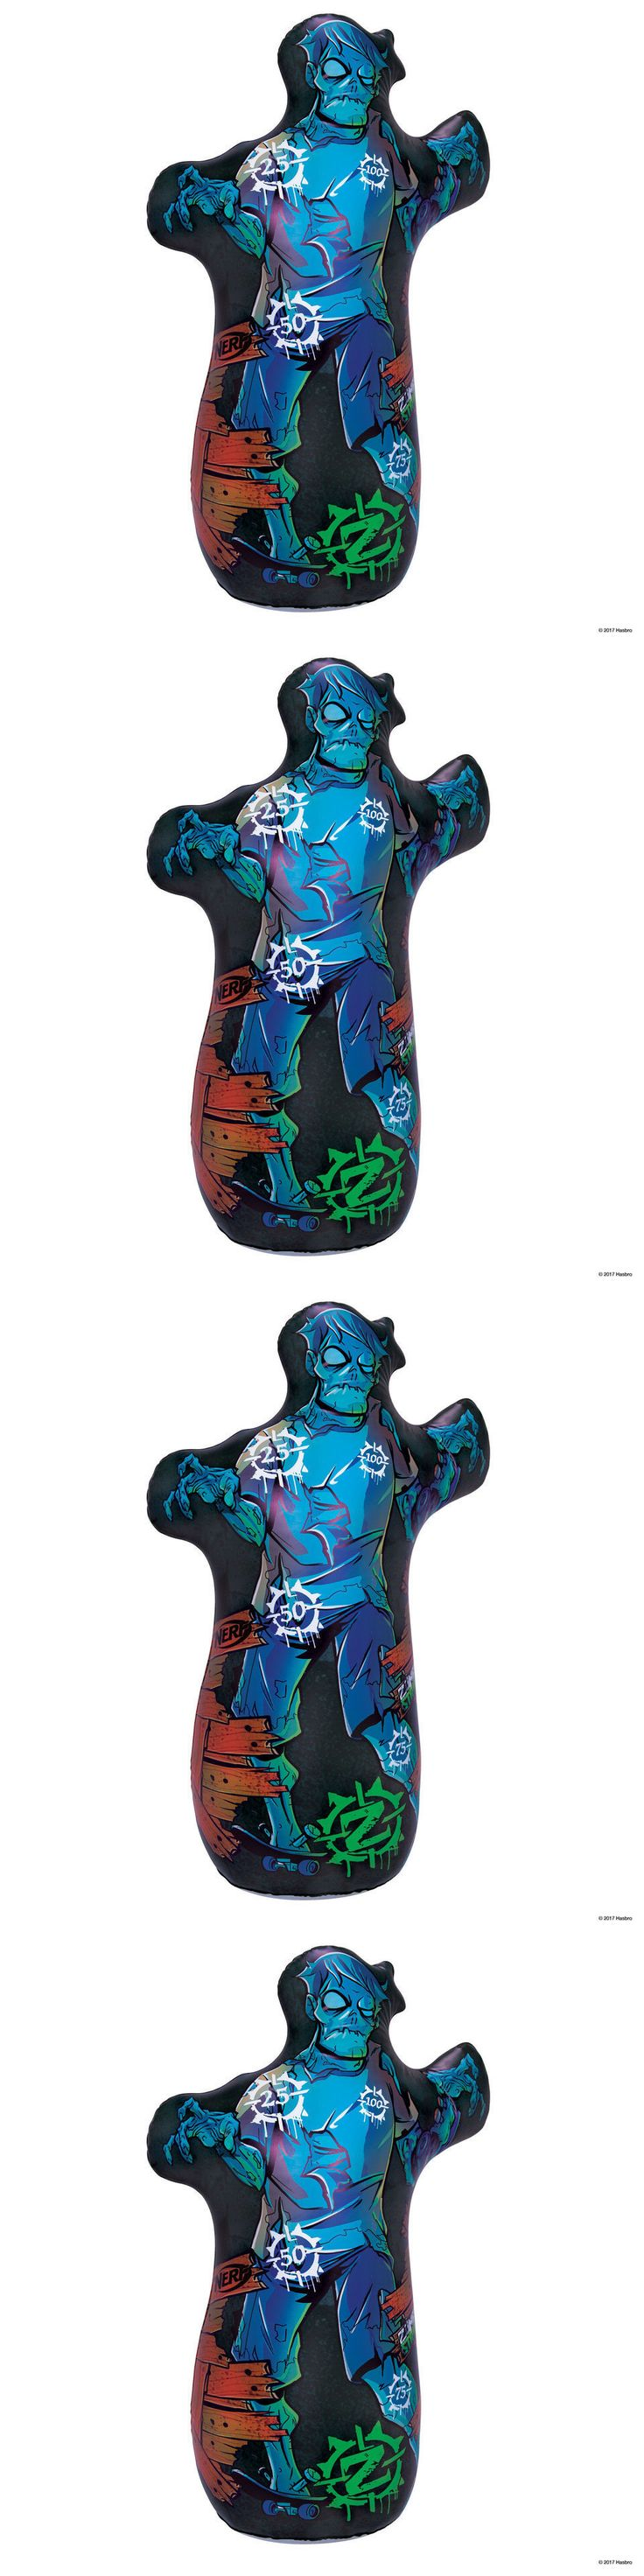 Dart Guns and Soft Darts 158749: Nerf Zombie Strike Inflatable Target Kids Outdoor Fun Play Practice Boy Gift Toy -> BUY IT NOW ONLY: $38.97 on eBay!